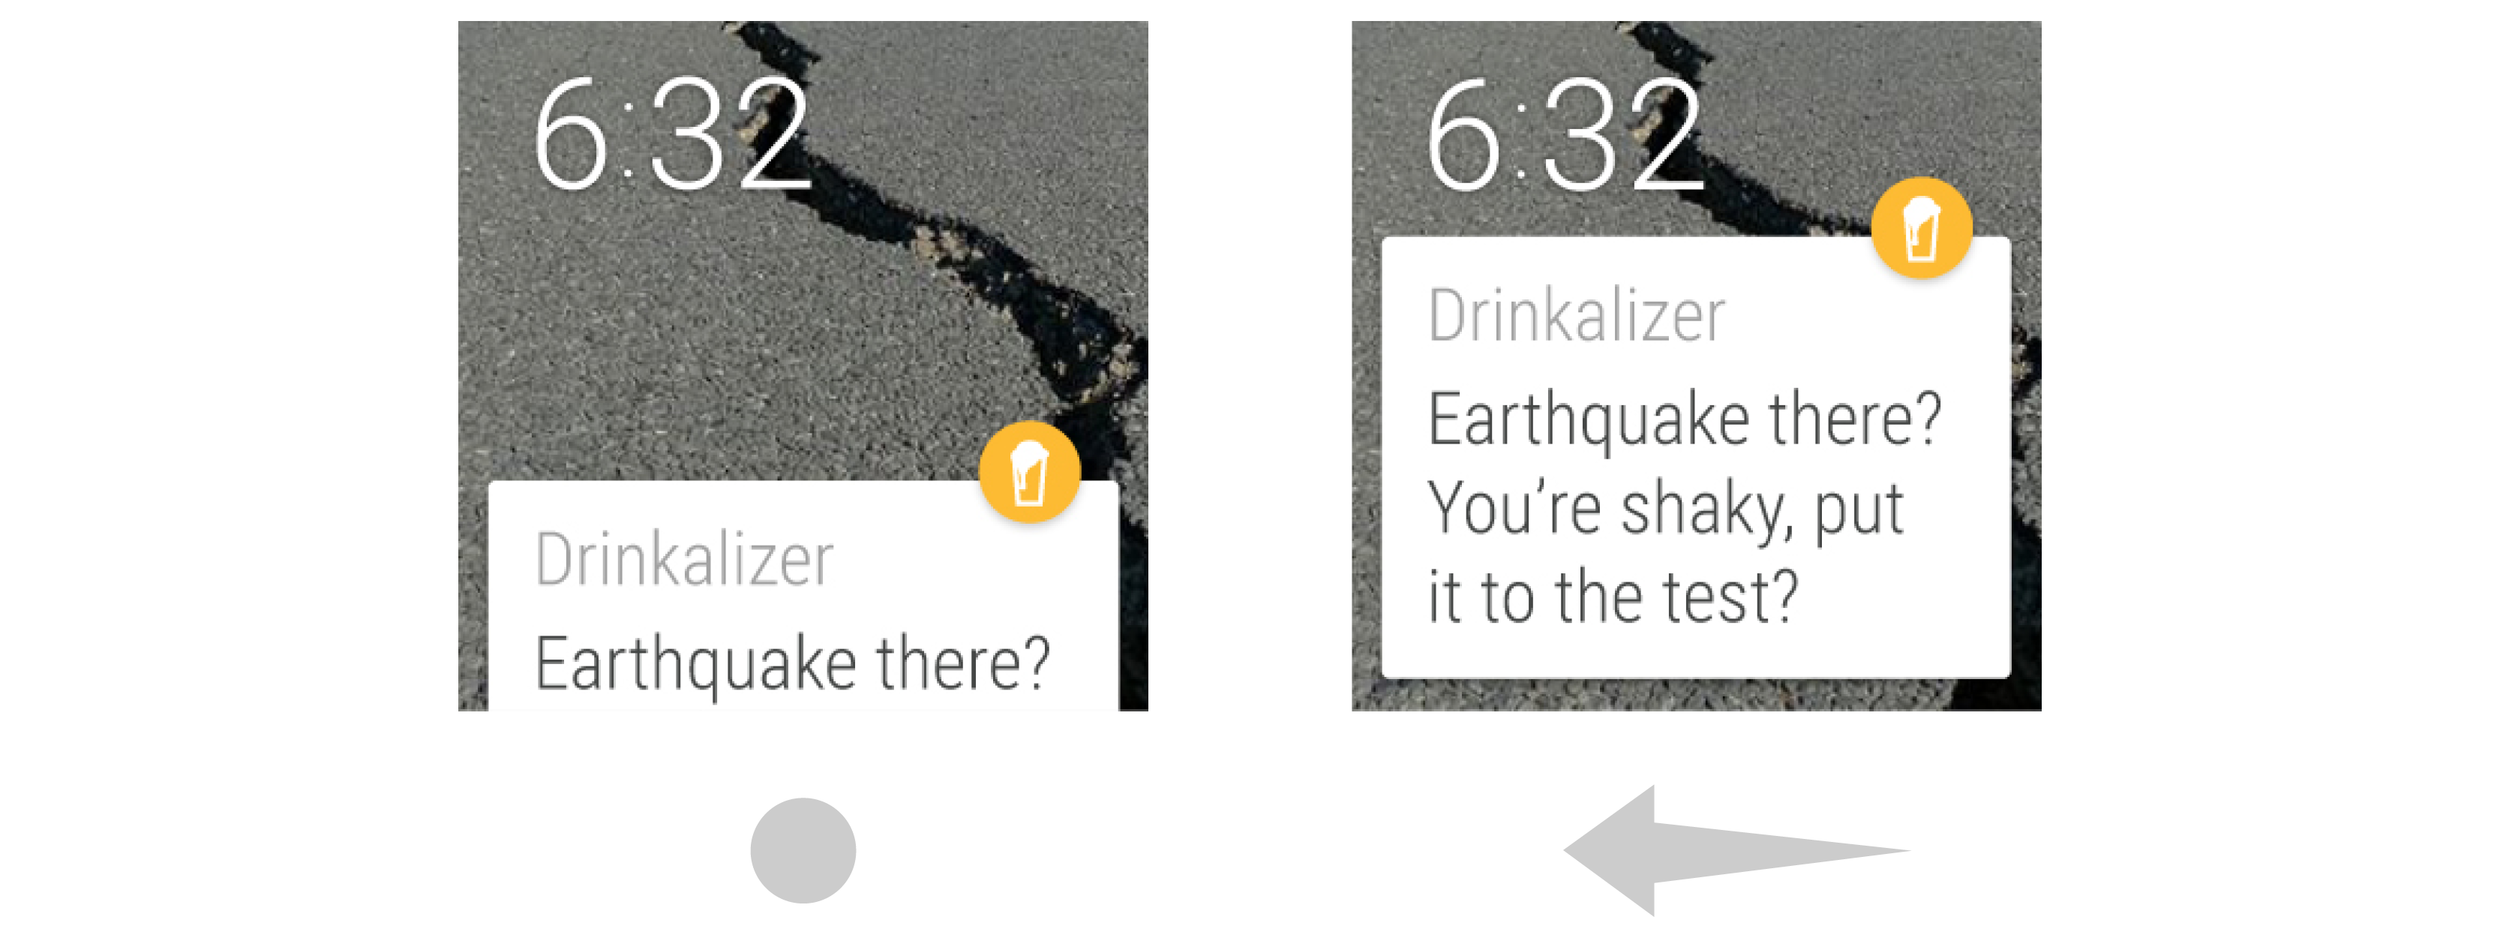 Drinkalizer Wearable Technology Android App